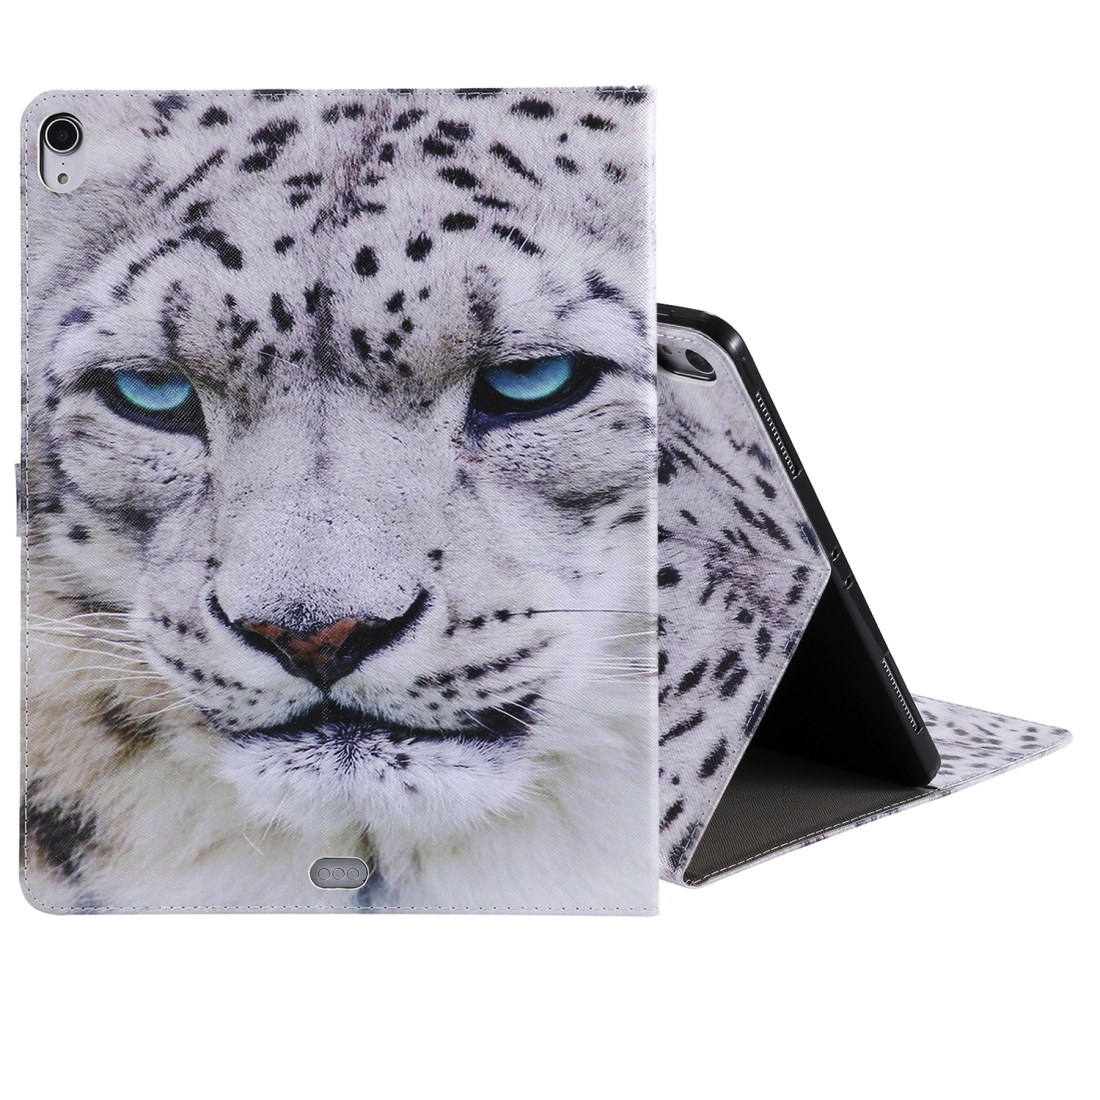 iPad Pro 12.9 Case (2018) Leather Case, With Sleeve (White Panther)